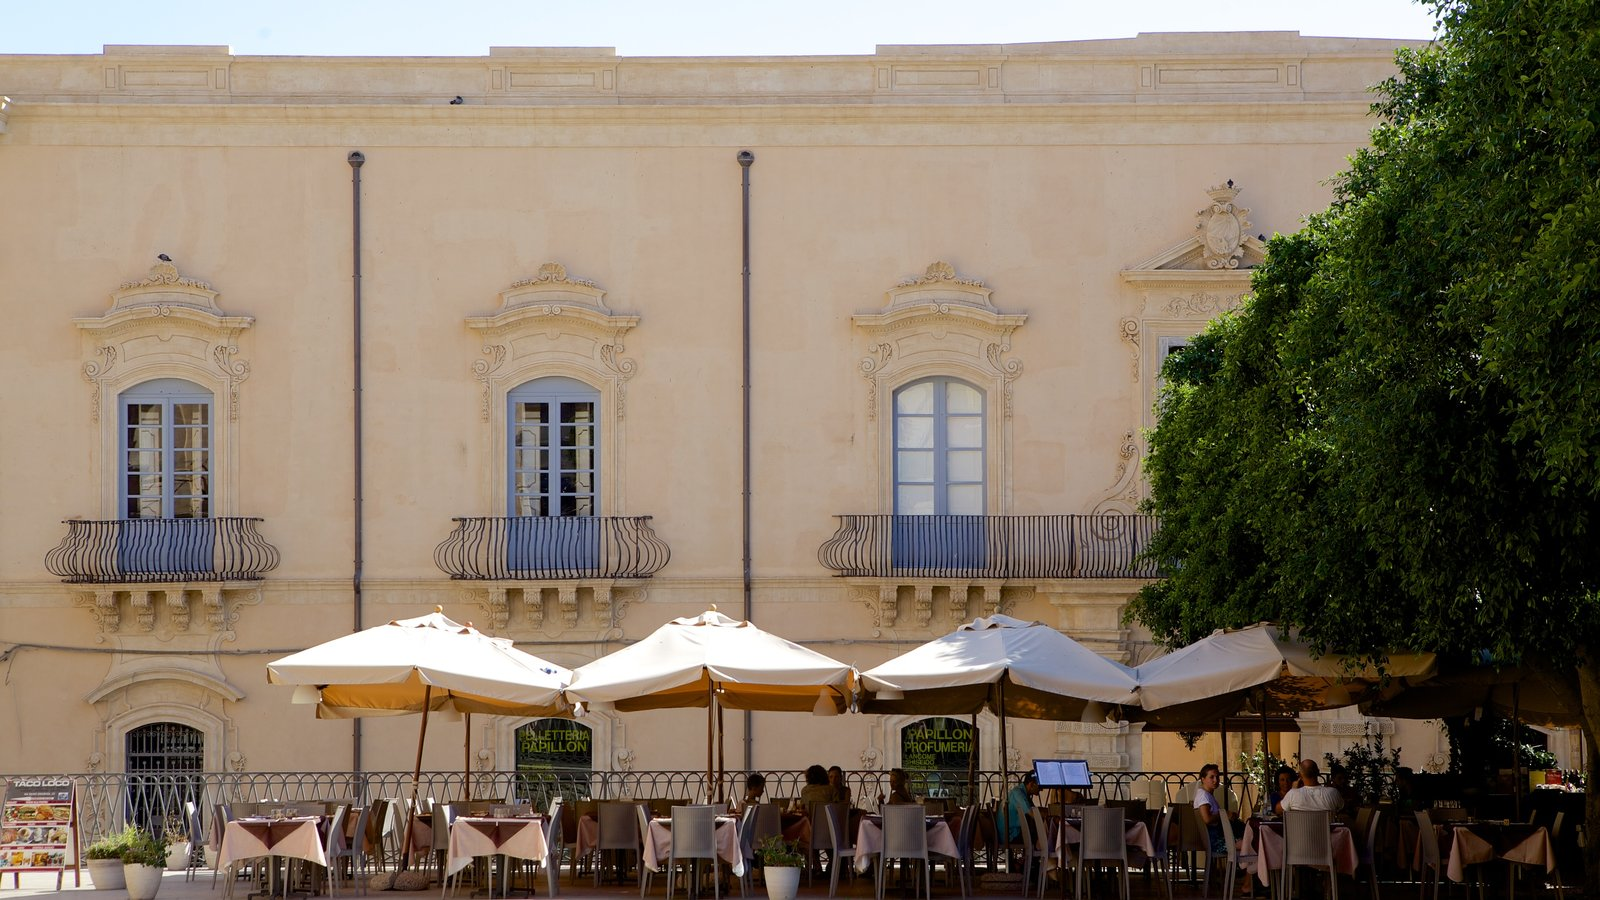 Noto showing outdoor eating, cafe lifestyle and street scenes